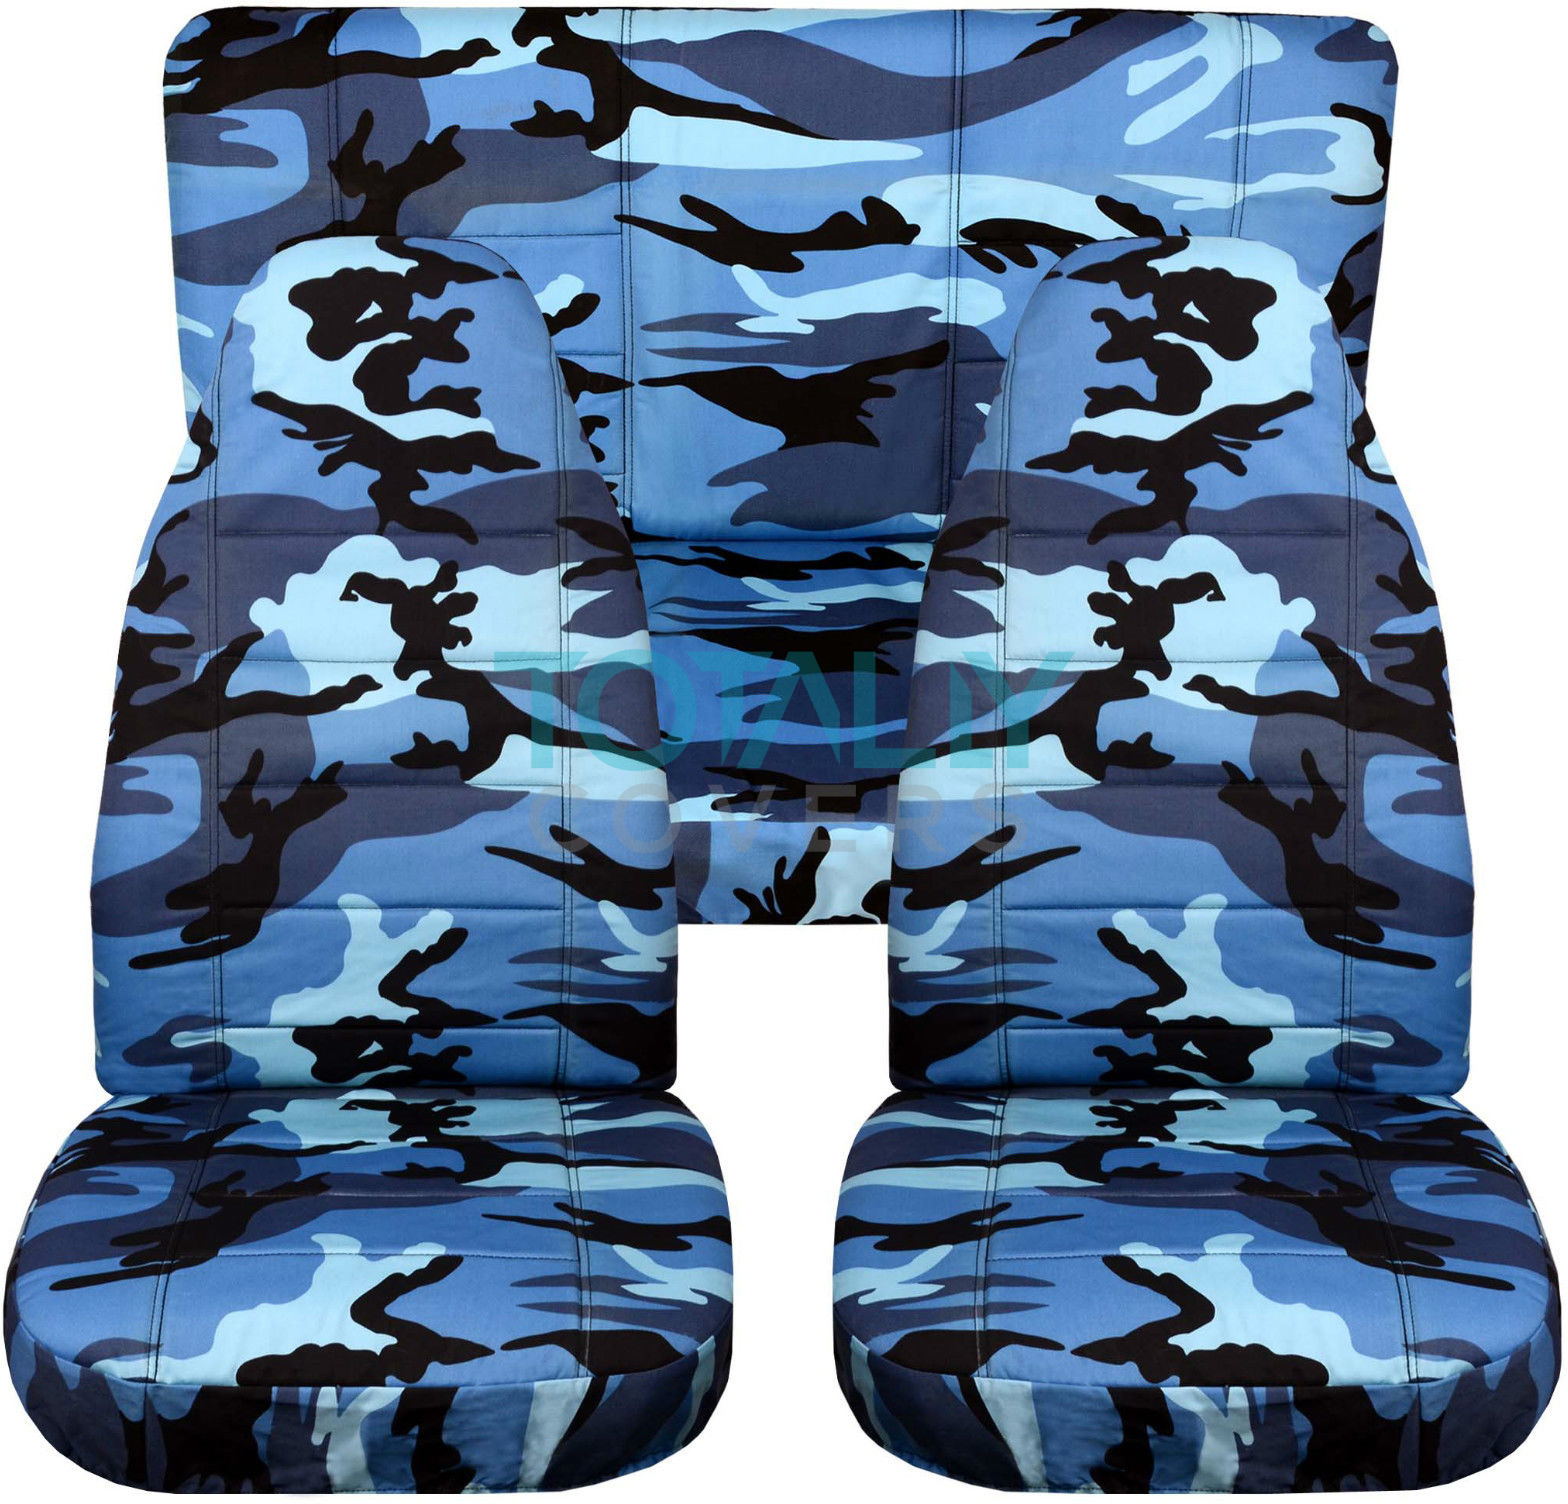 Jeep Wrangler Yj Tj Jk 1987 2017 Camo Seat Covers Front